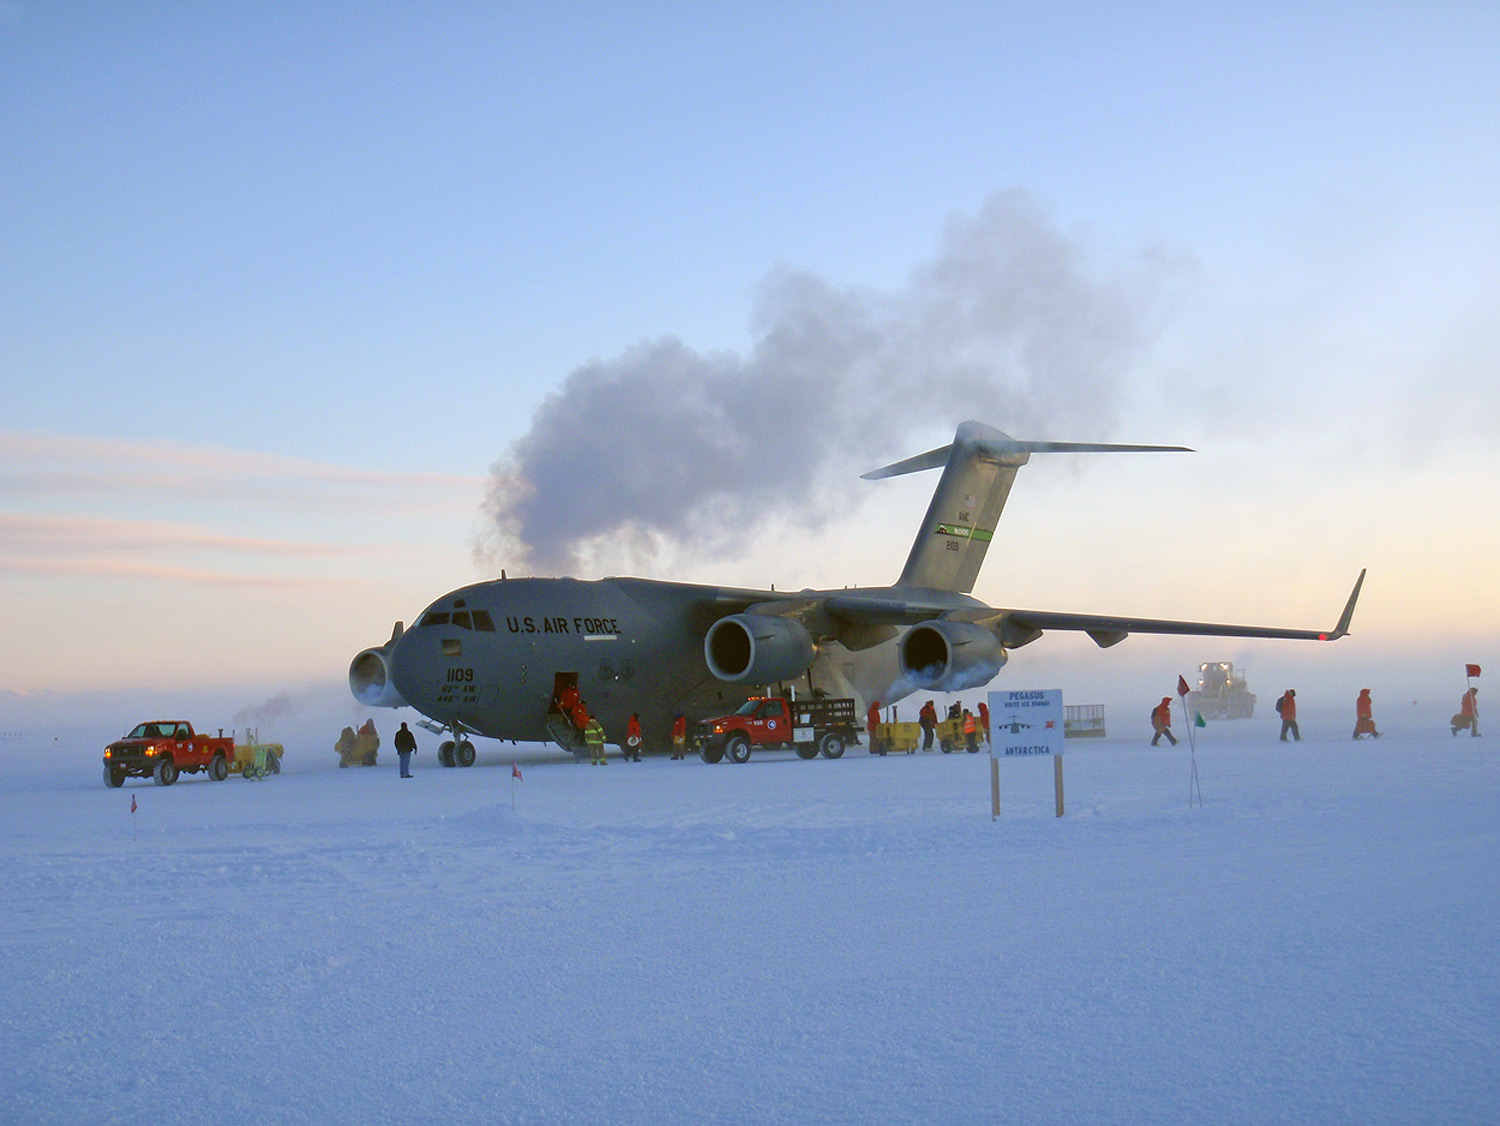 C-17 arriving at Pegasus Field Antarctica